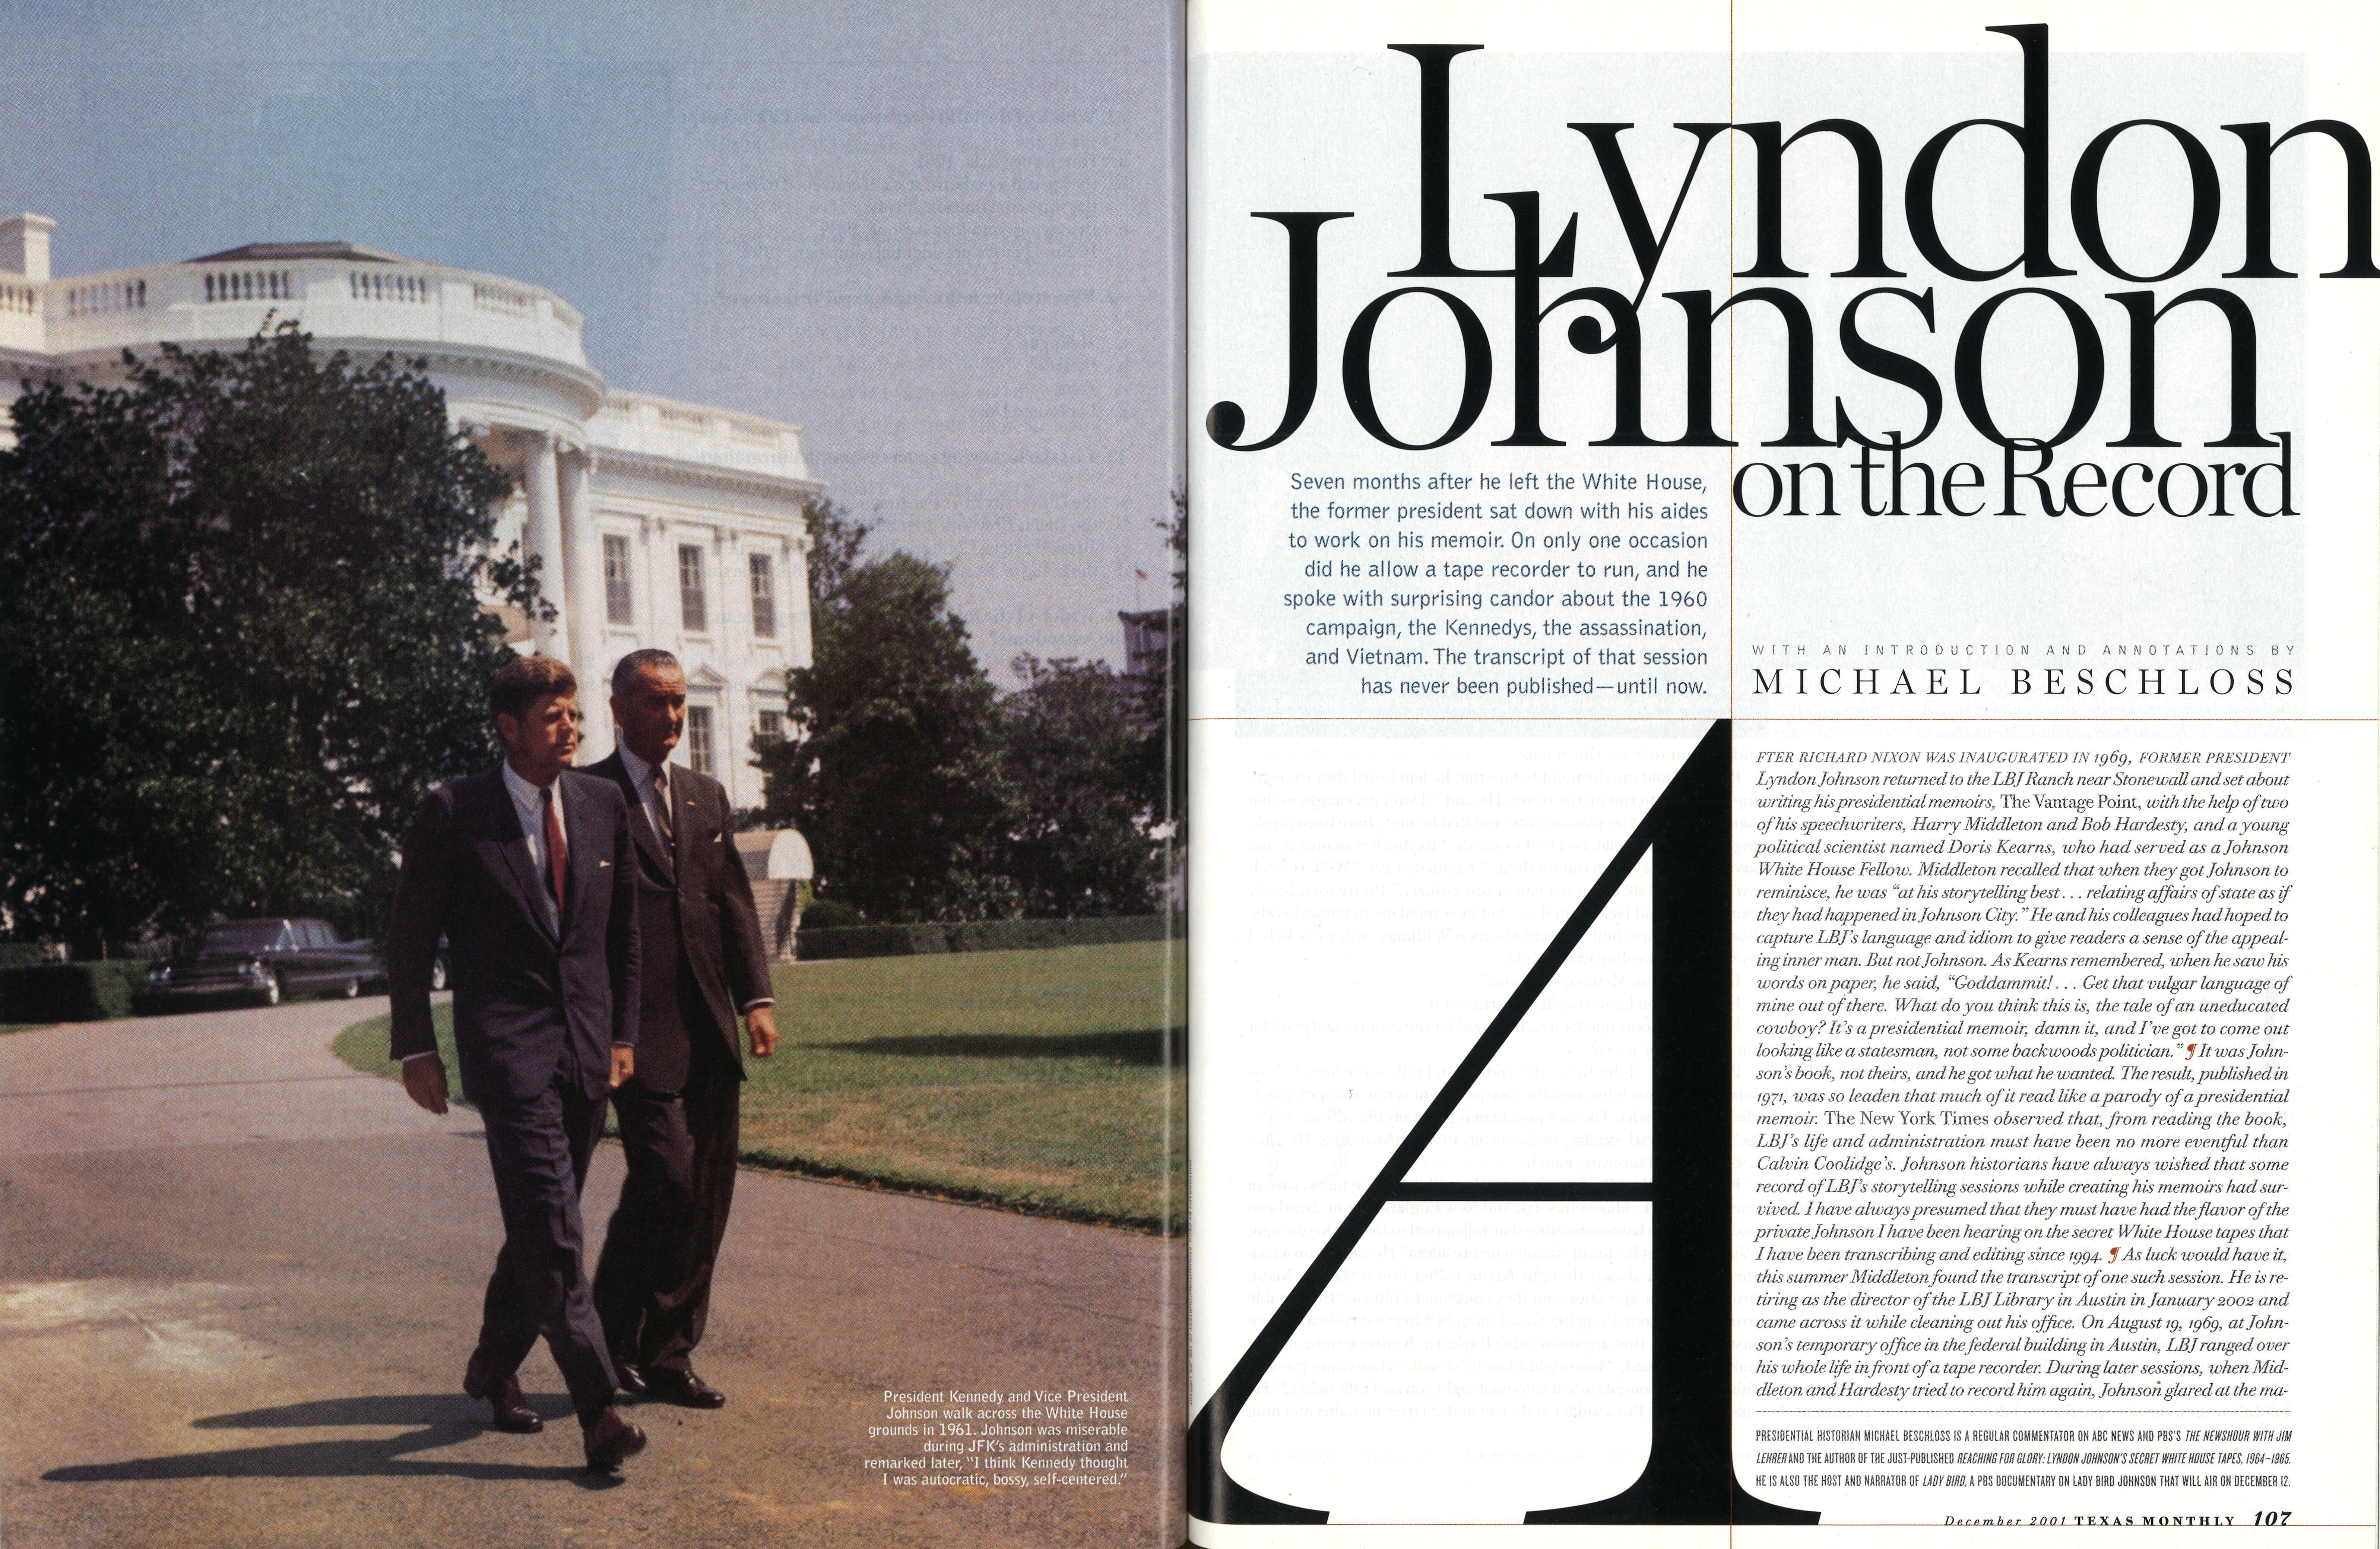 President Kennedy and Vice President Johnson walk across the White House grounds in 1961.